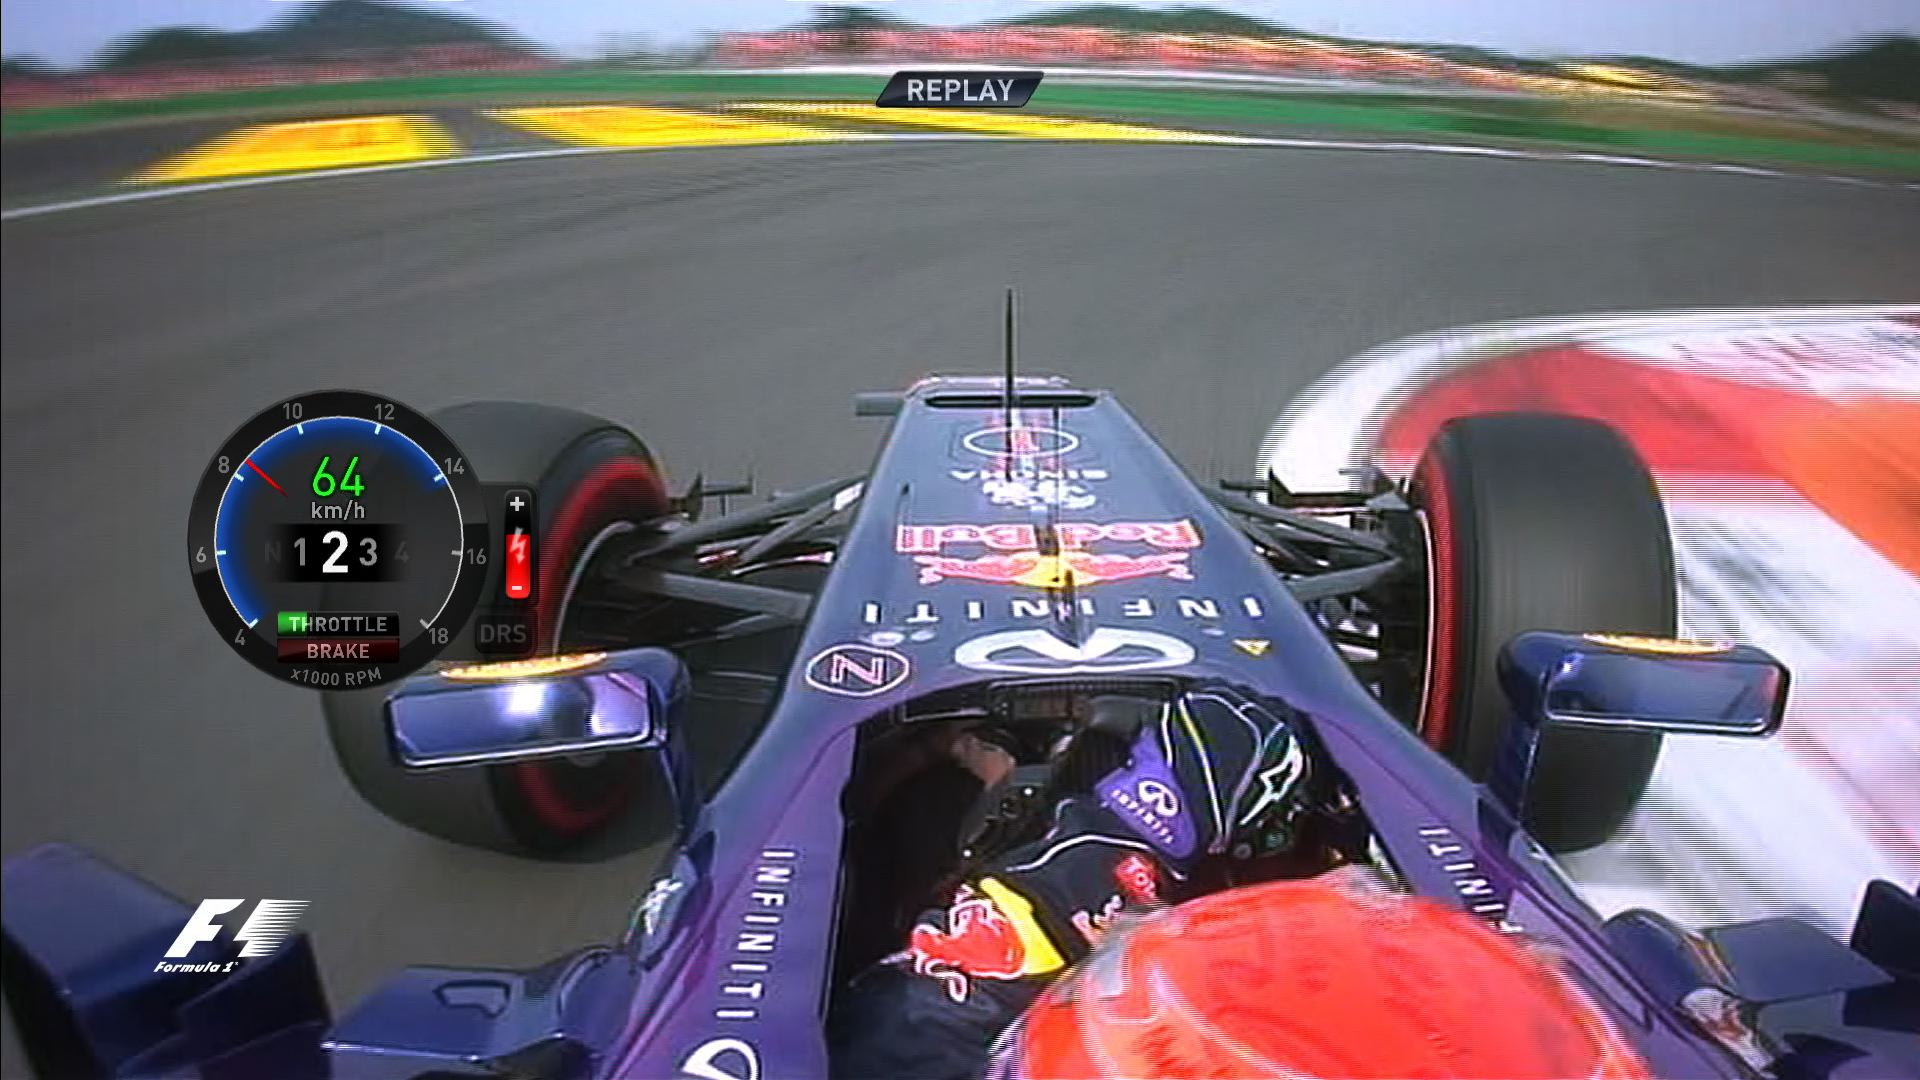 Sebastian Vettel's Korean Grand Prix pole lap